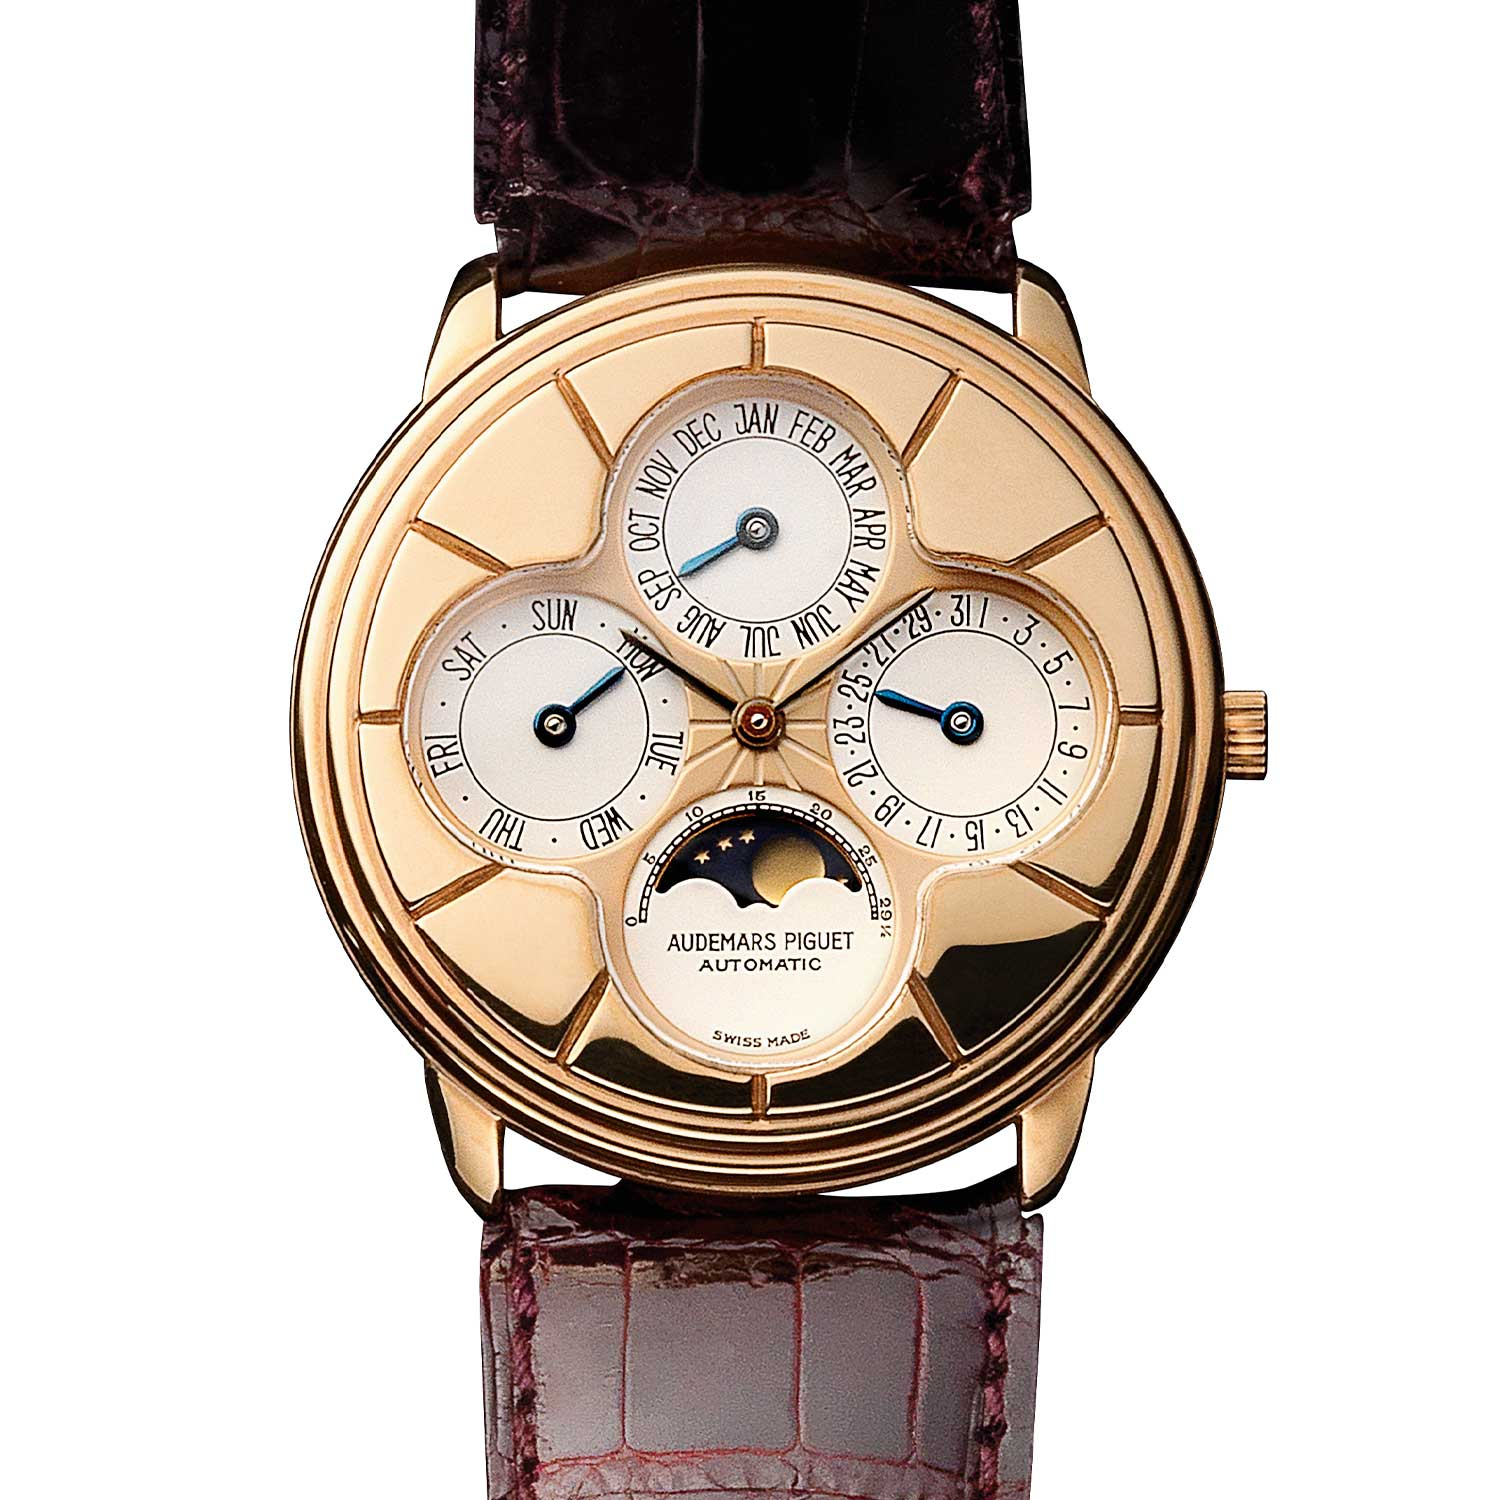 Perpetual calendar with a four-leaf clover dial. Model 25681OR (123 examples, of which 28 in pink gold). Movement No 324681, case No C66276. Calibre 2120/2800. Movement made in 1989, watch sold in 1990. Audemars Piguet Heritage Collection, Inv. 776.